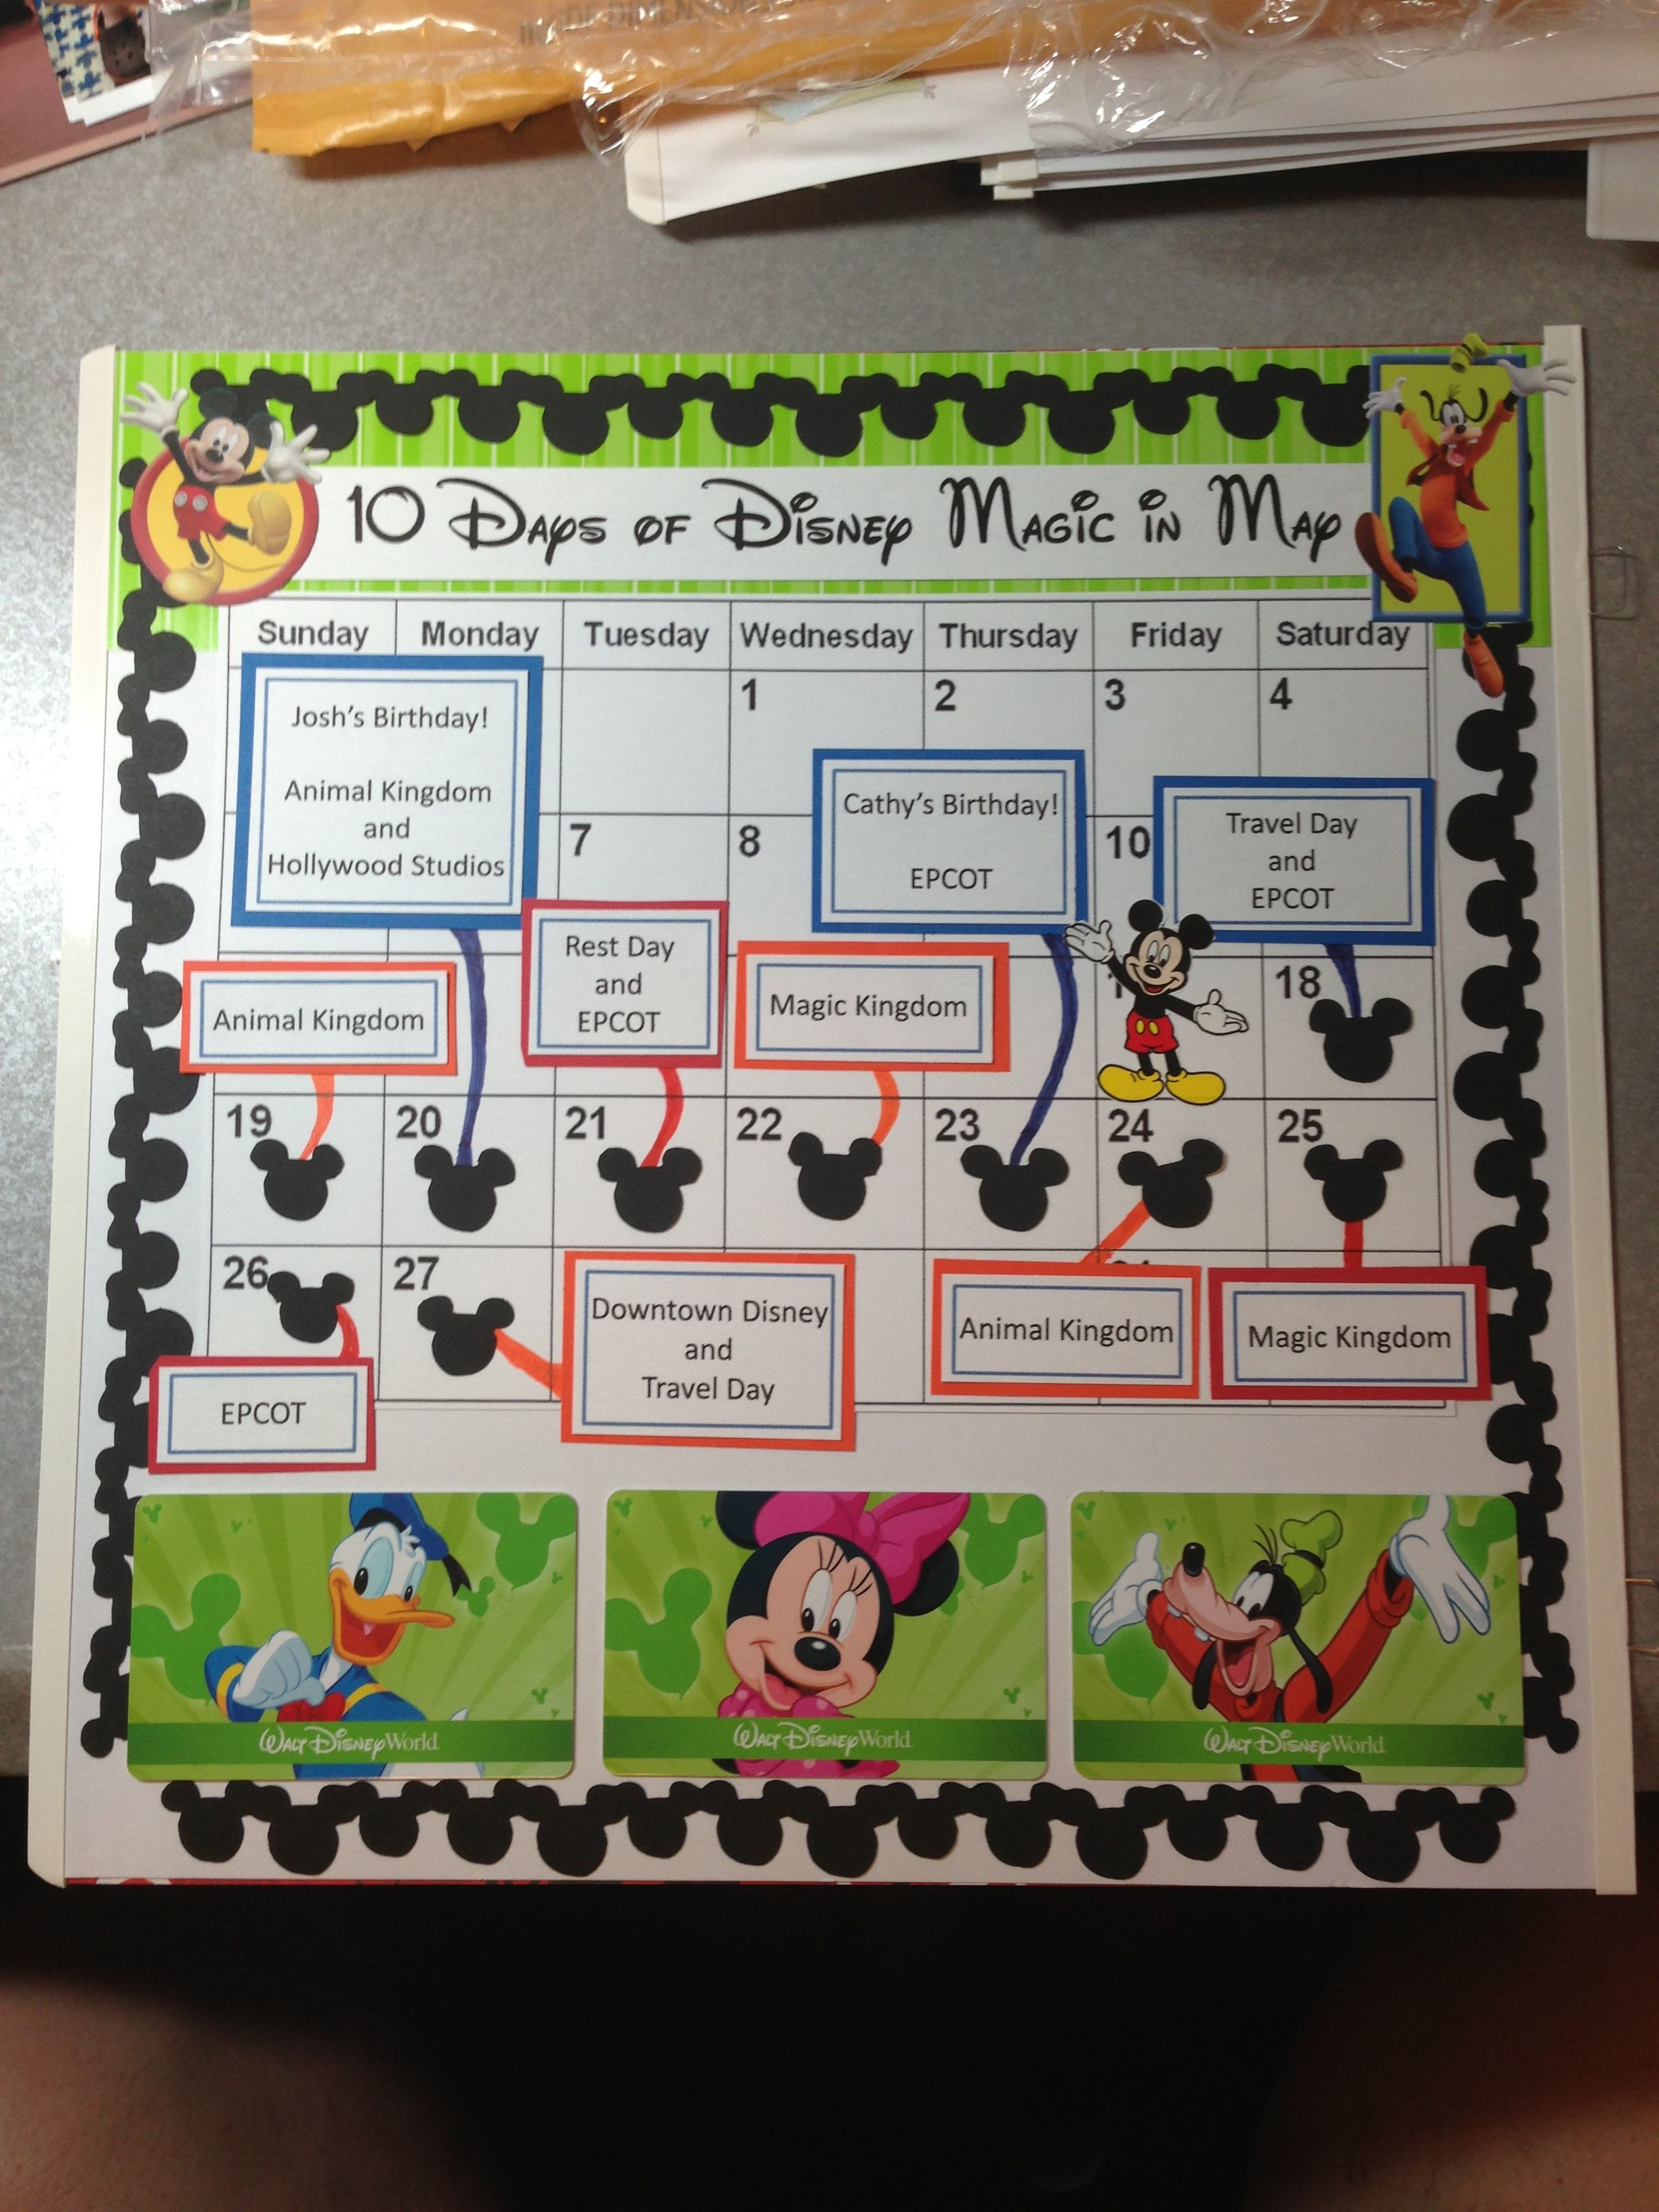 How to scrapbook disney vacation - Disney World Calendar Itinerary Would Be A Cute Page Idea To Document Travel Dates